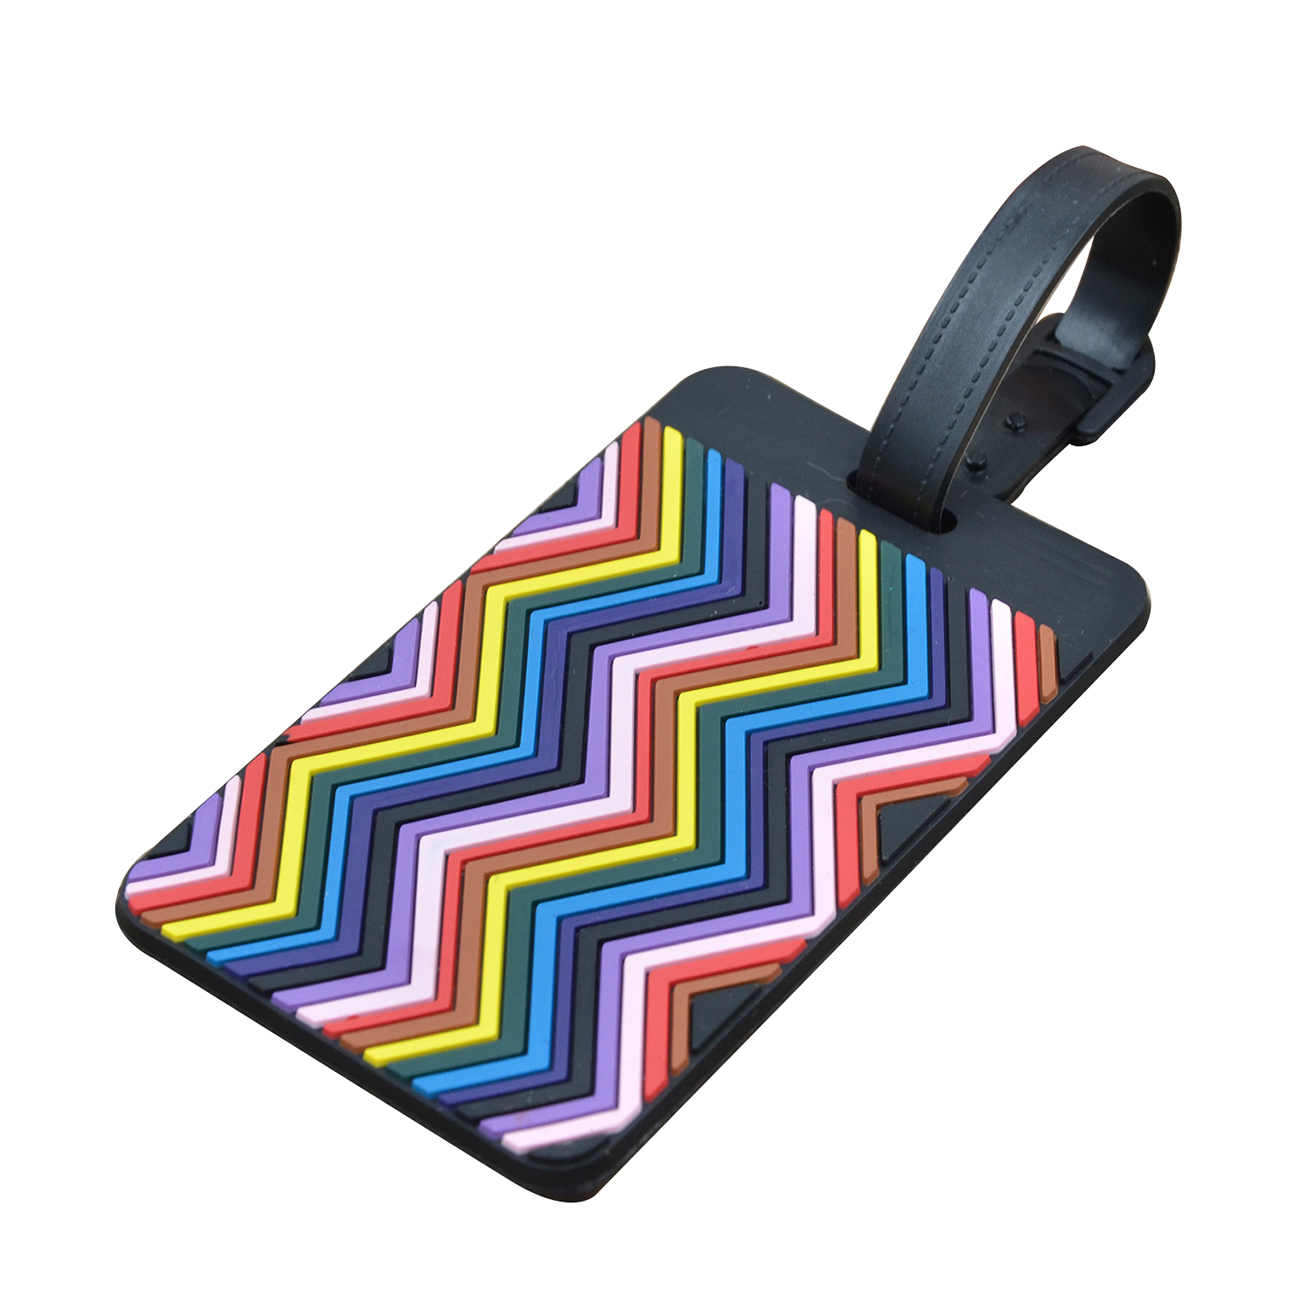 secure travel suitcase id luggage tag put it back it s mine black ASDS Portable Secure Travel Suitcase ID Luggage Handbag Large Tag Label (Yellow+Blue)